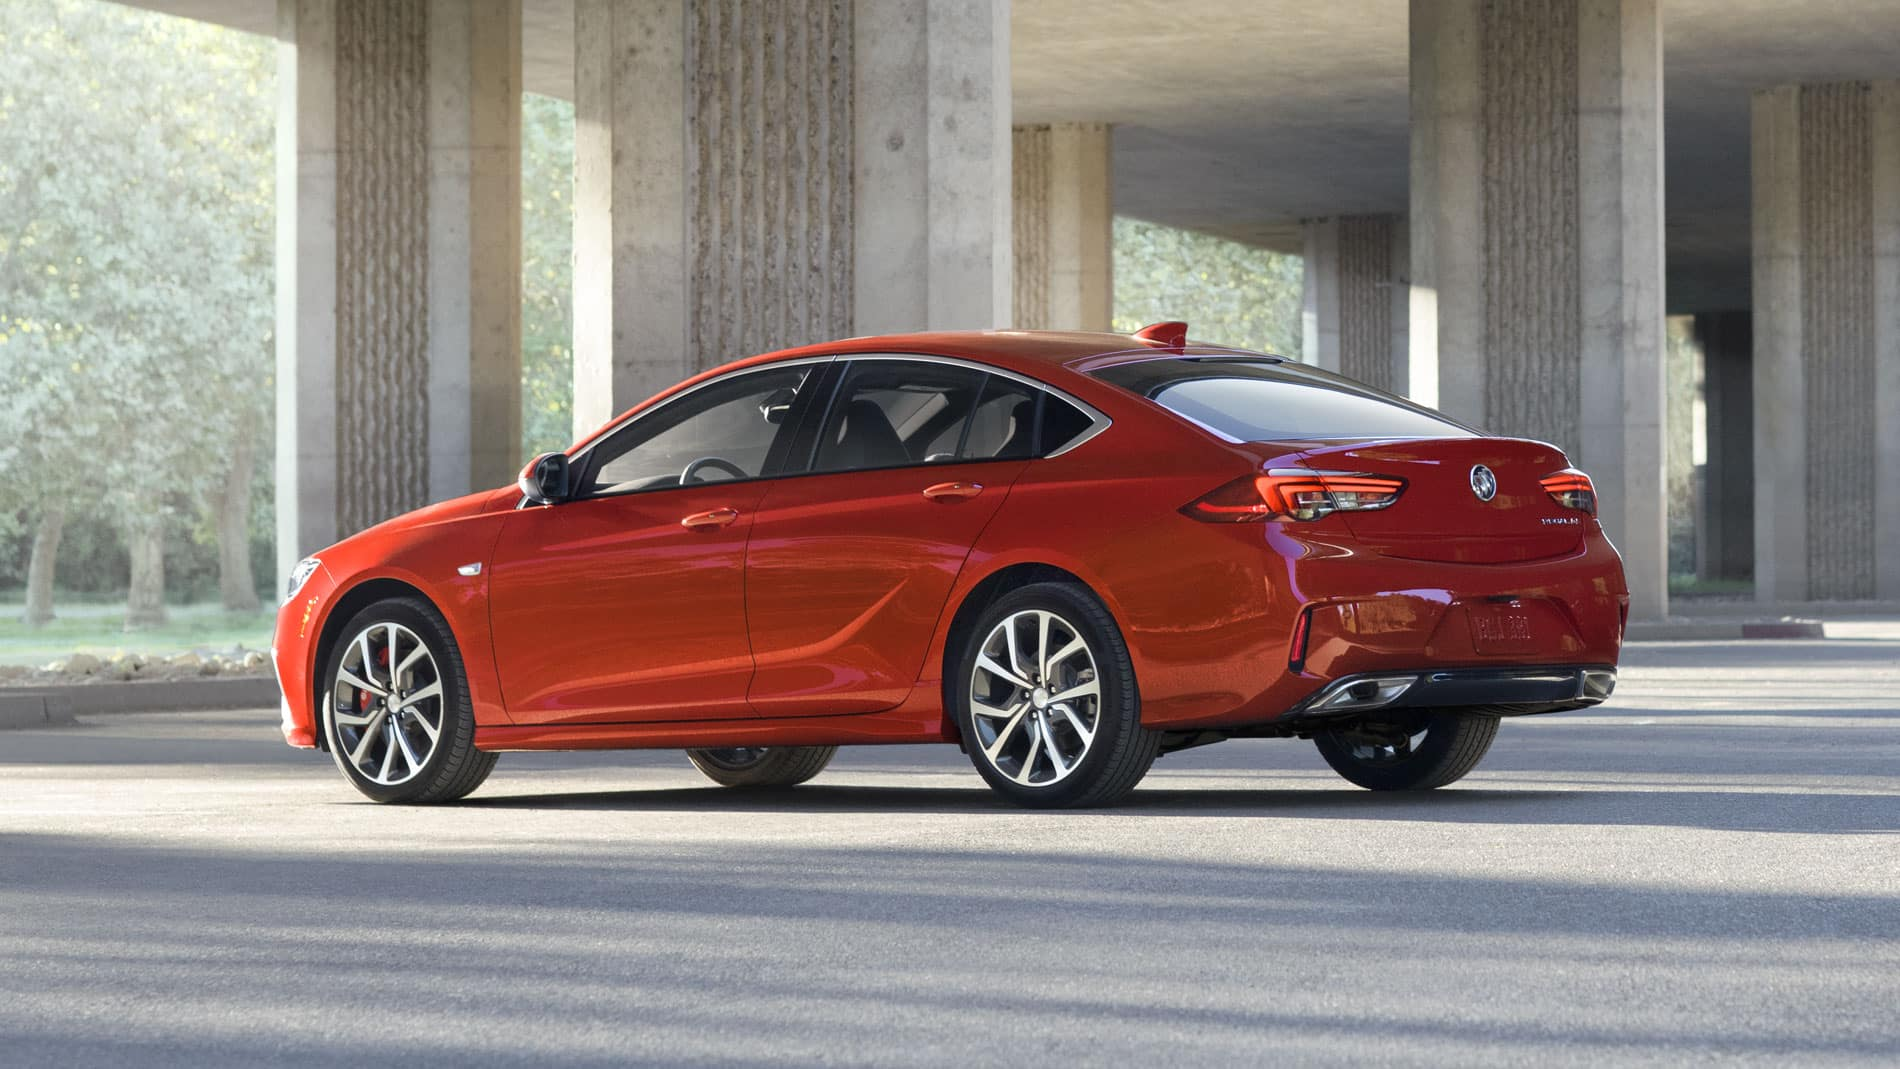 Garber Auto Mall >> Buick Regal GS Vs. Cadillac CTS: American Luxury Car Shootout